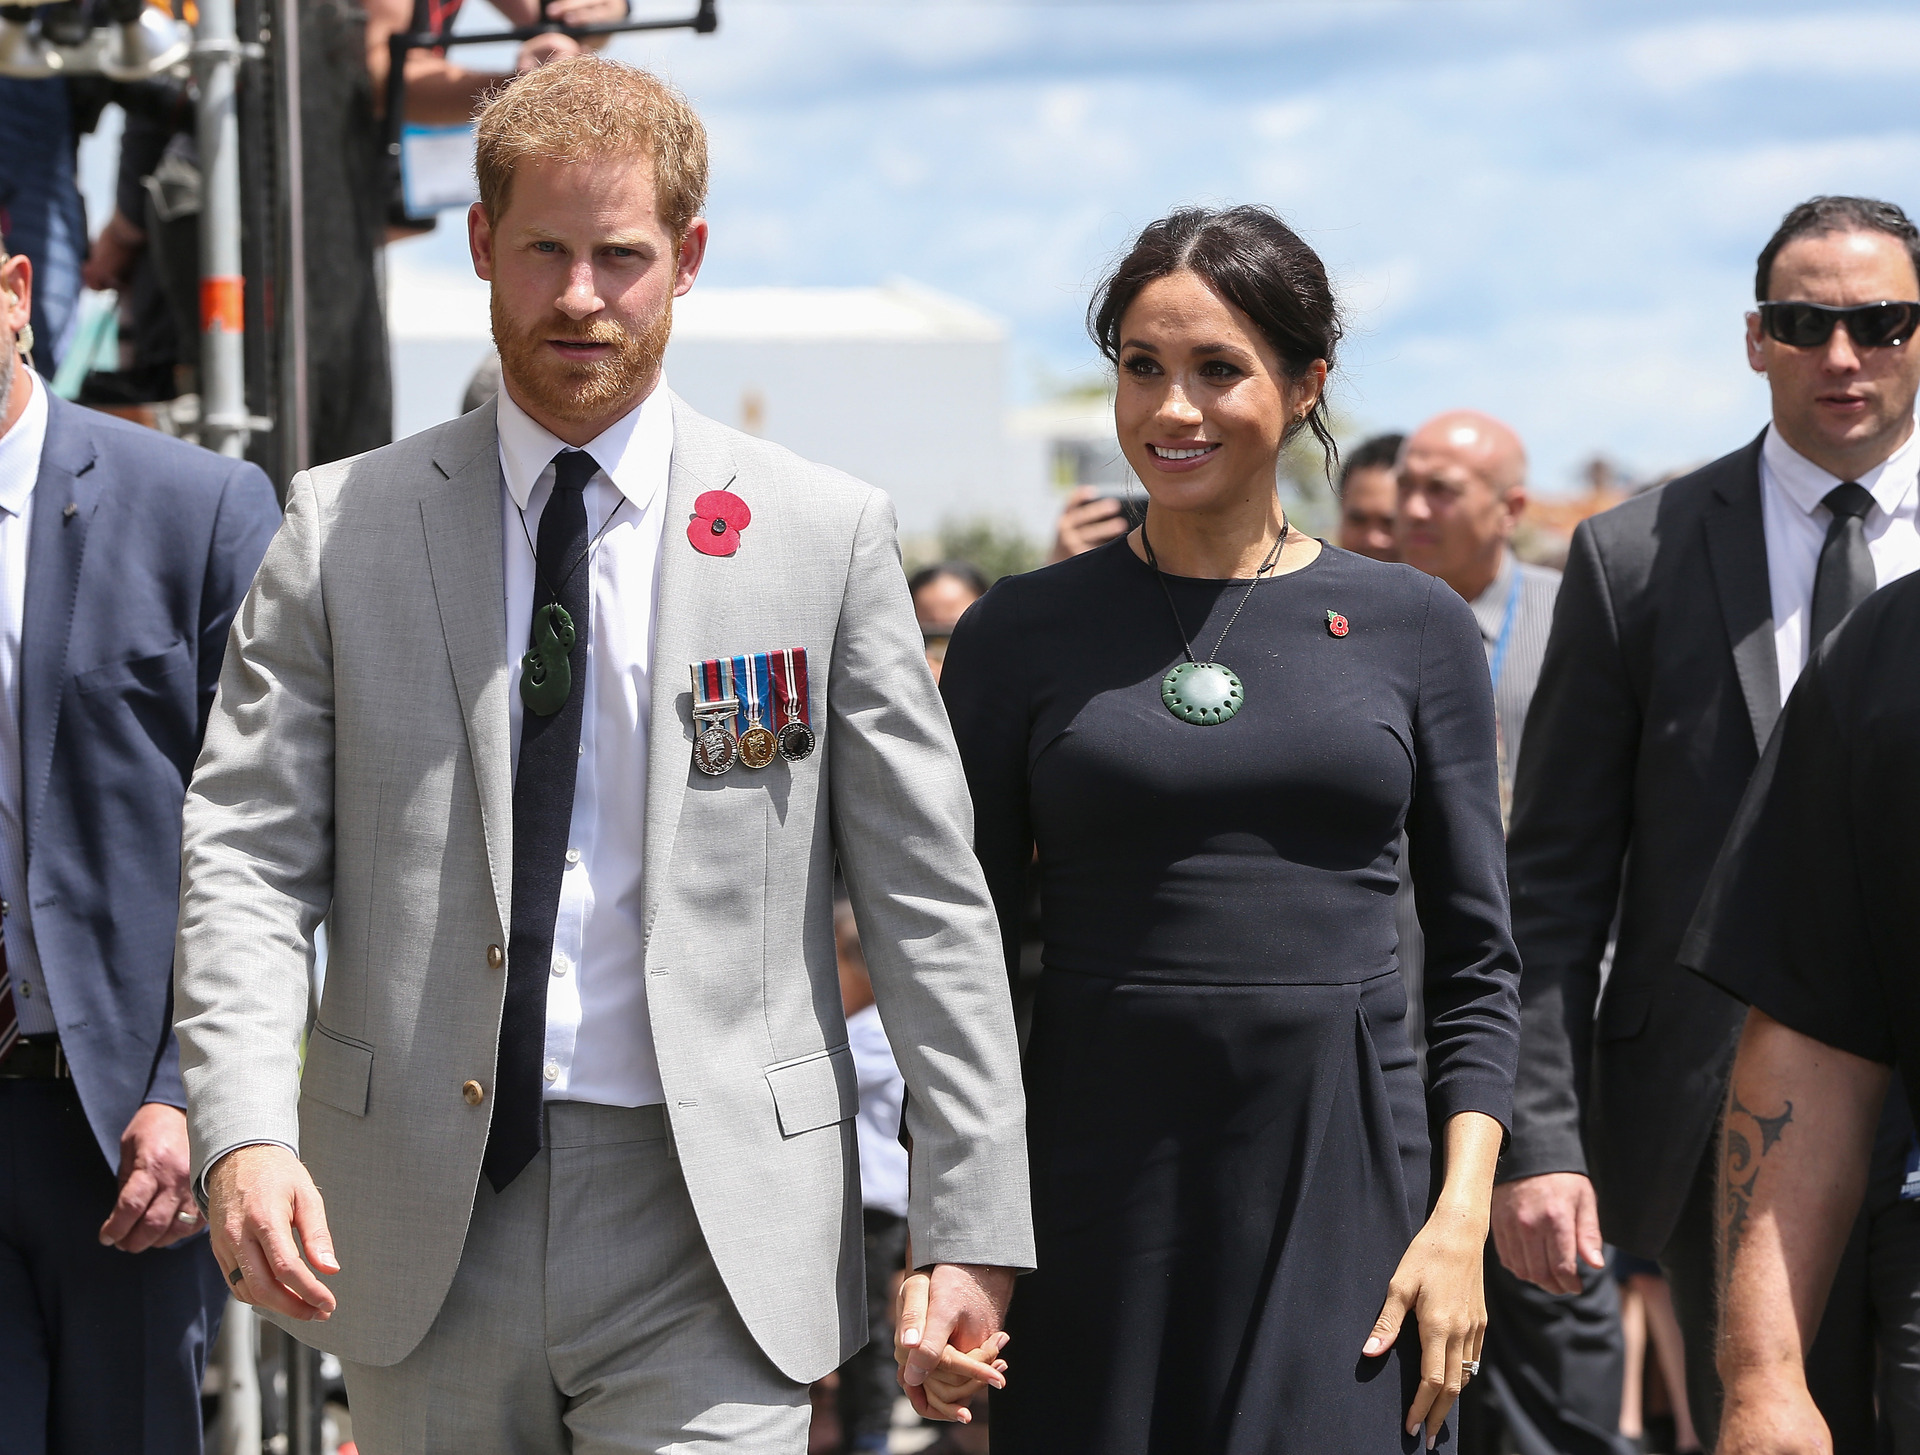 How to watch that Harry and Meghan doco everyone's talking about